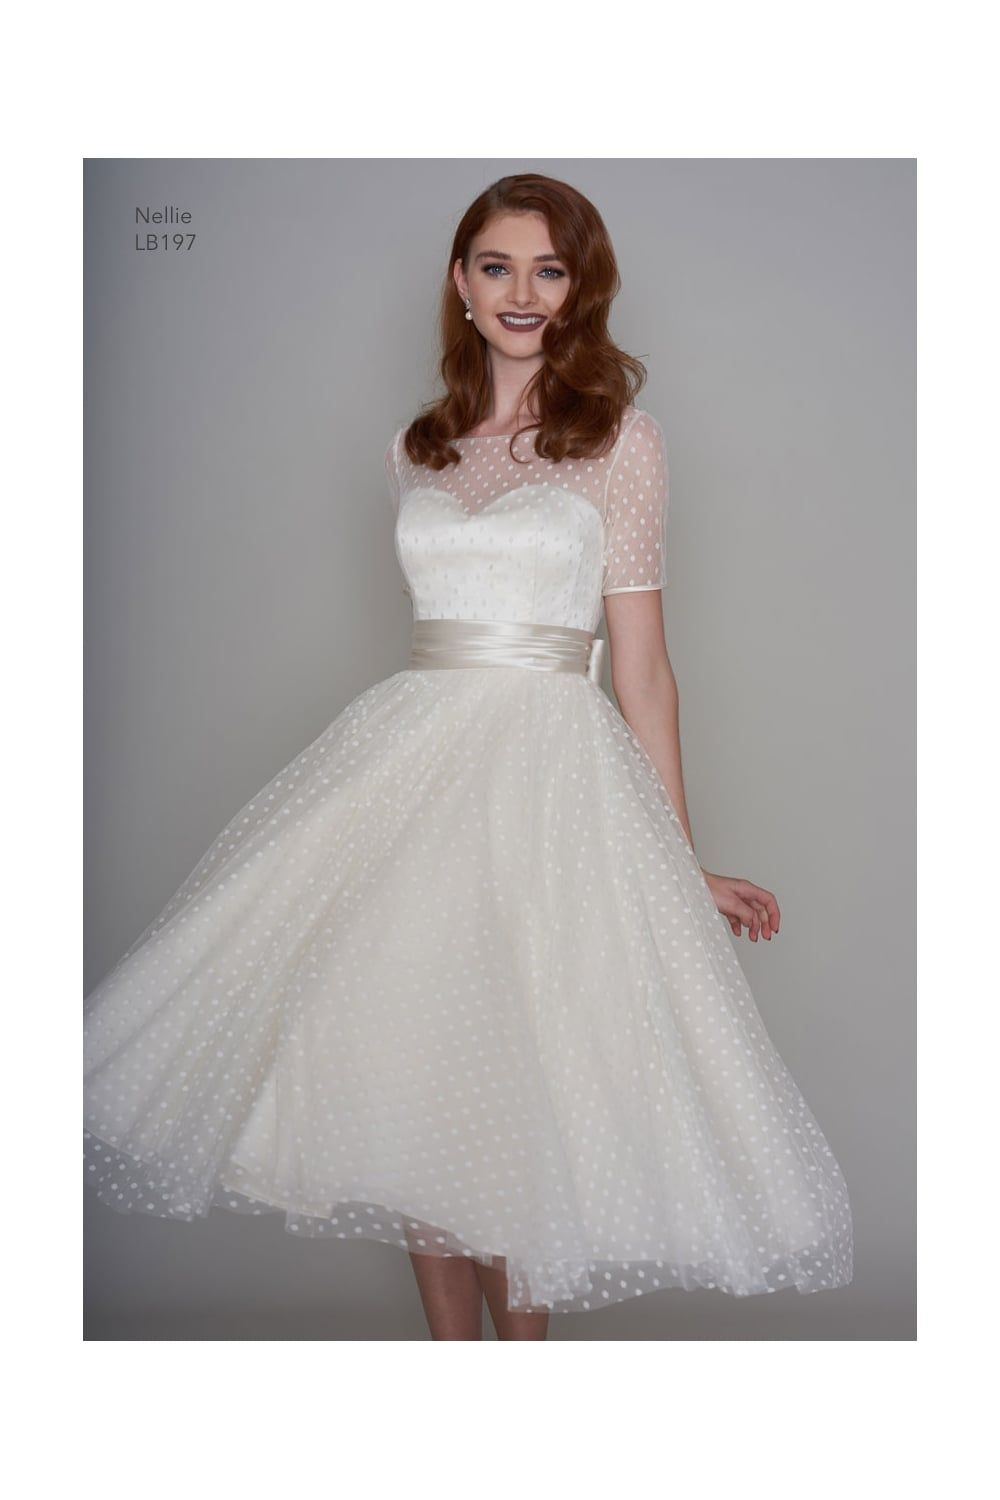 LB197 NELLIE 1950s Tea Length Polka Dot Short Vintage Wedding Dress ...